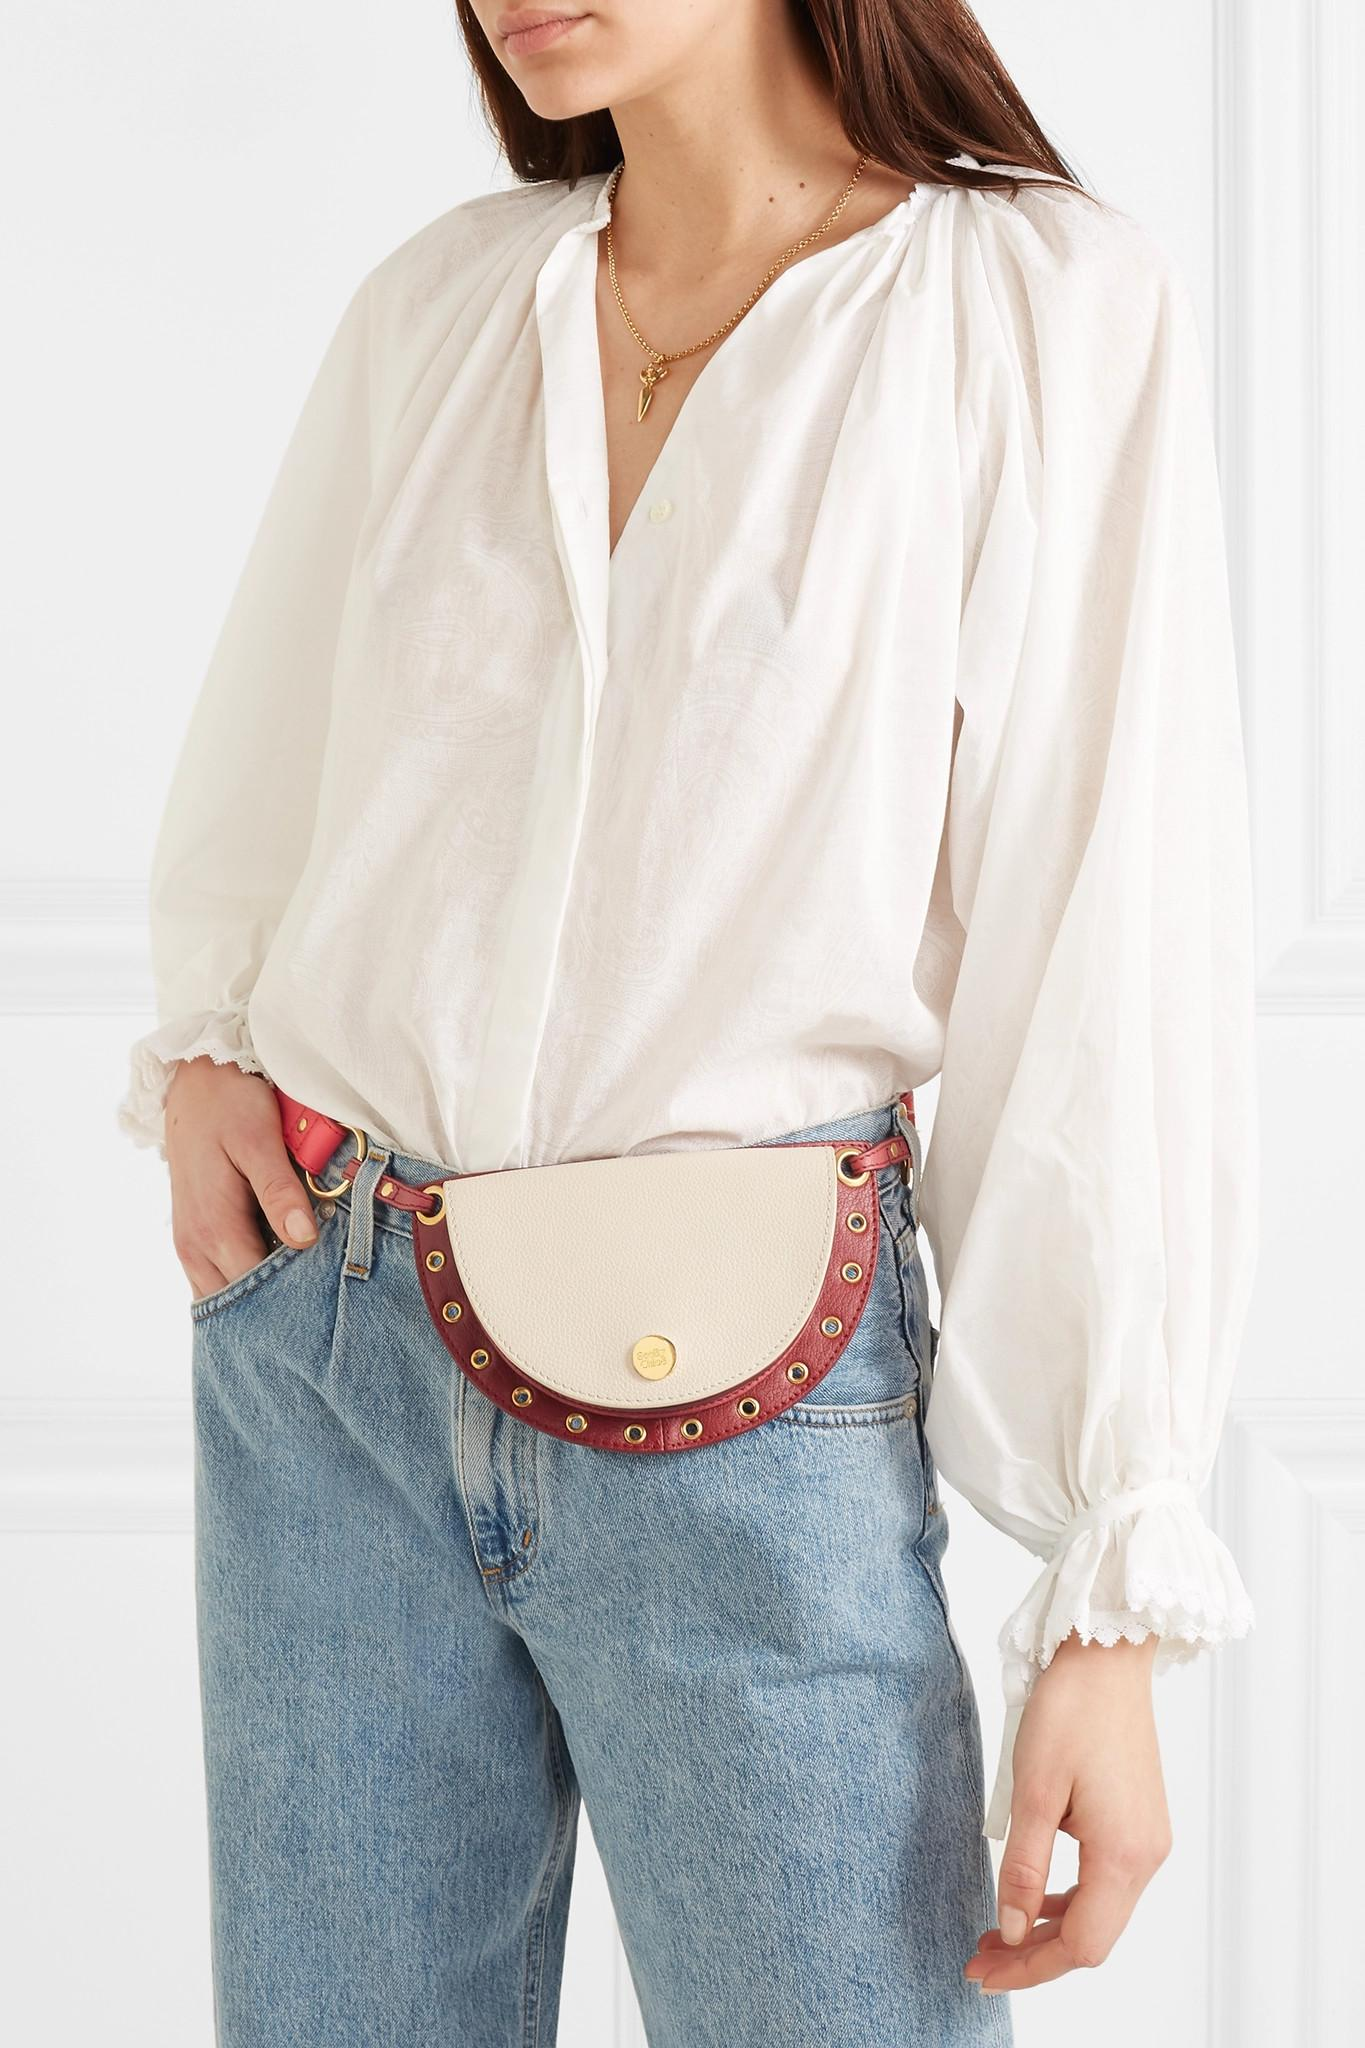 d59391fdbfb4 see-by-chloe-plum-Kriss-Embellished-Color-block-Textured-leather -Belt-Bag.jpeg